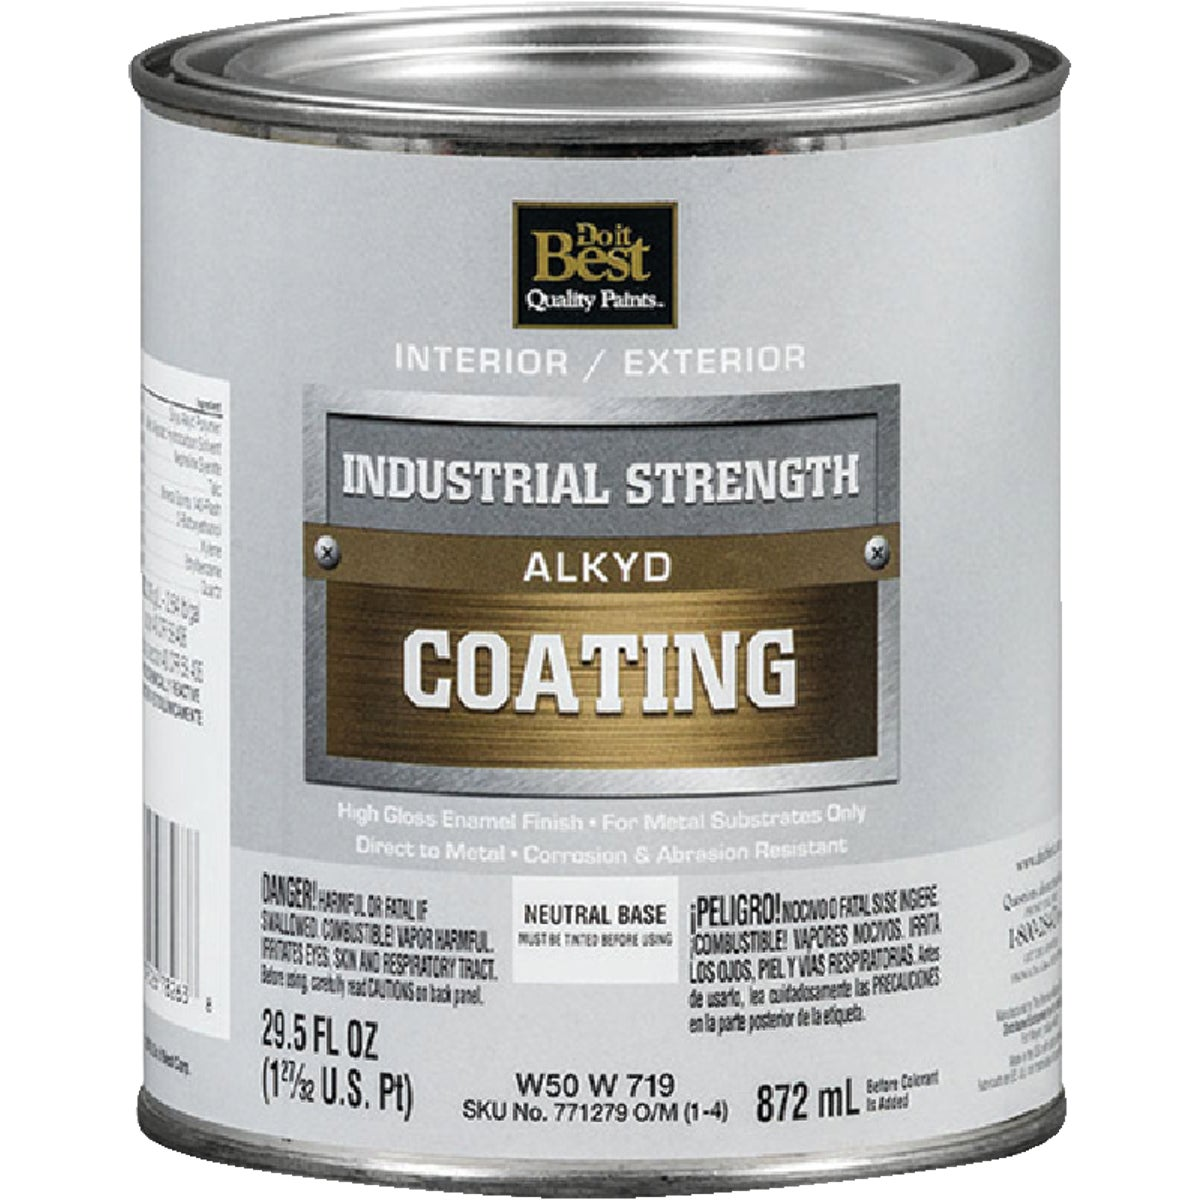 GLS NEUTR BS ALKYD PAINT - W50W00719-44 by Do it Best